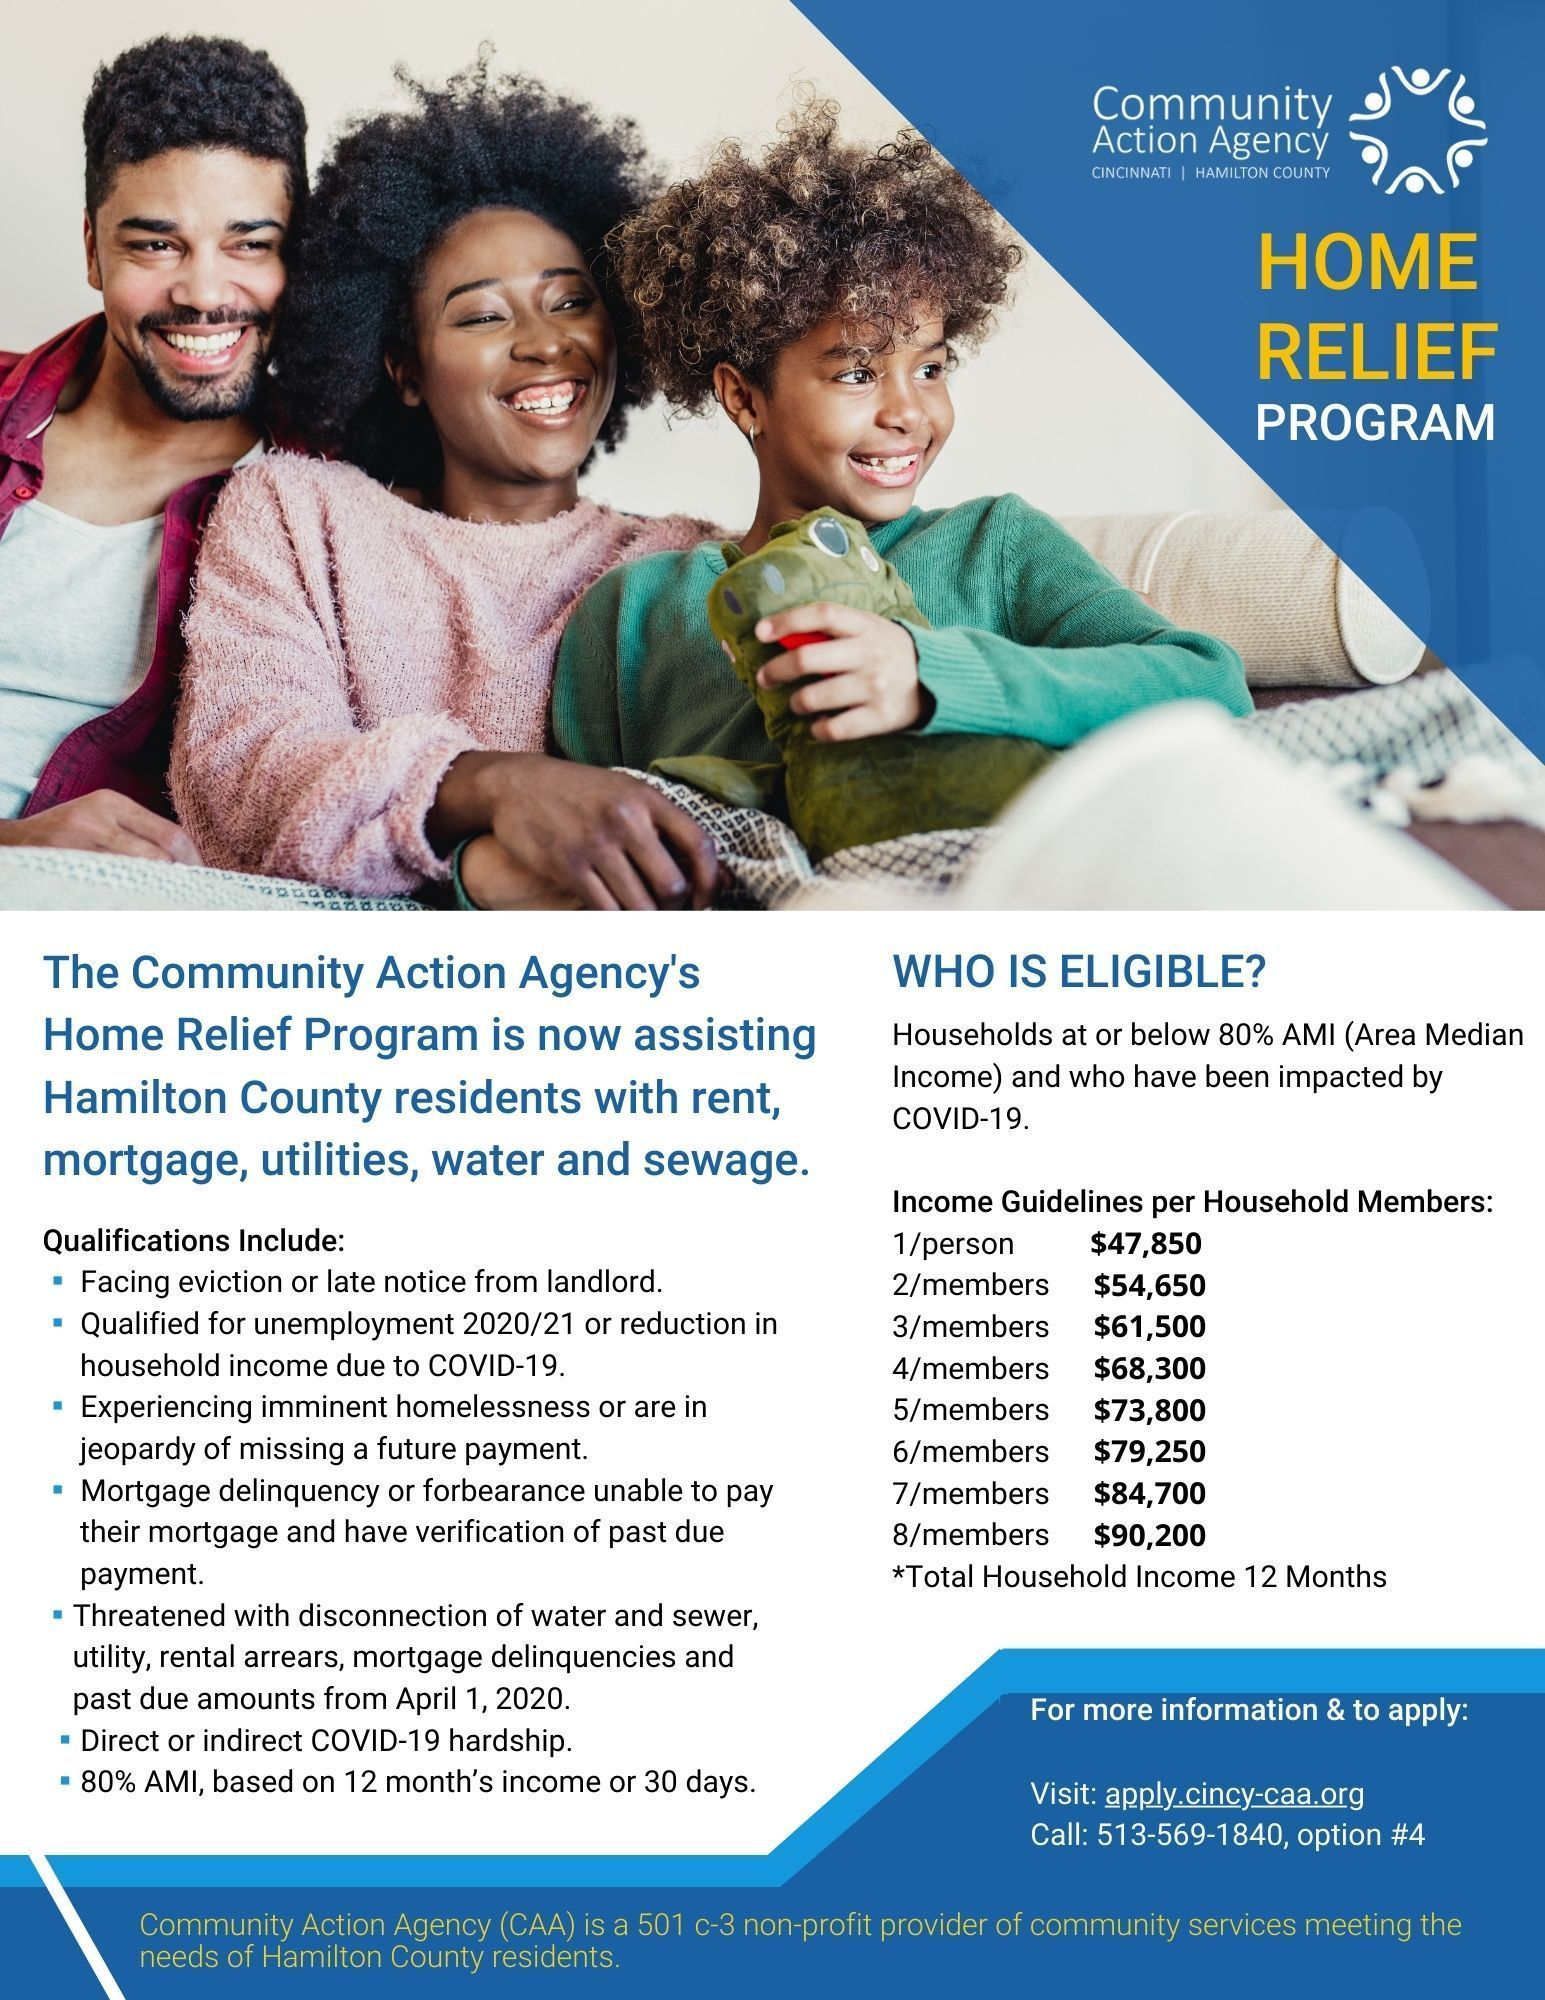 Download and Print our Home Relief Assistance flyer!